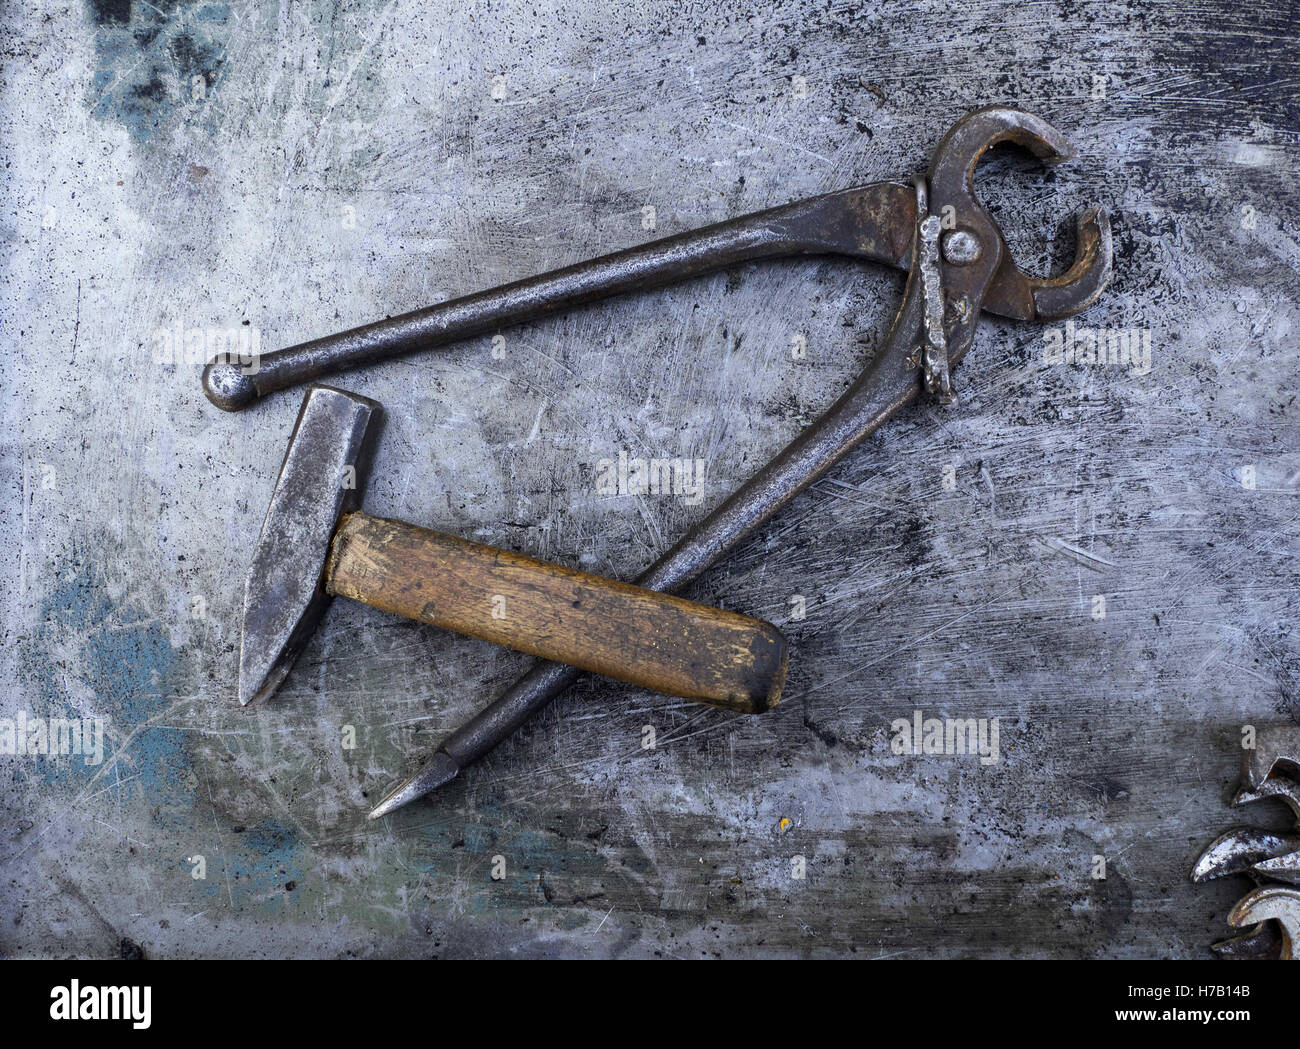 November 3, 2016 - Old rusty himmer and Pincer Pliers on metal background © Igor Golovniov/ZUMA Wire/Alamy - Stock Image